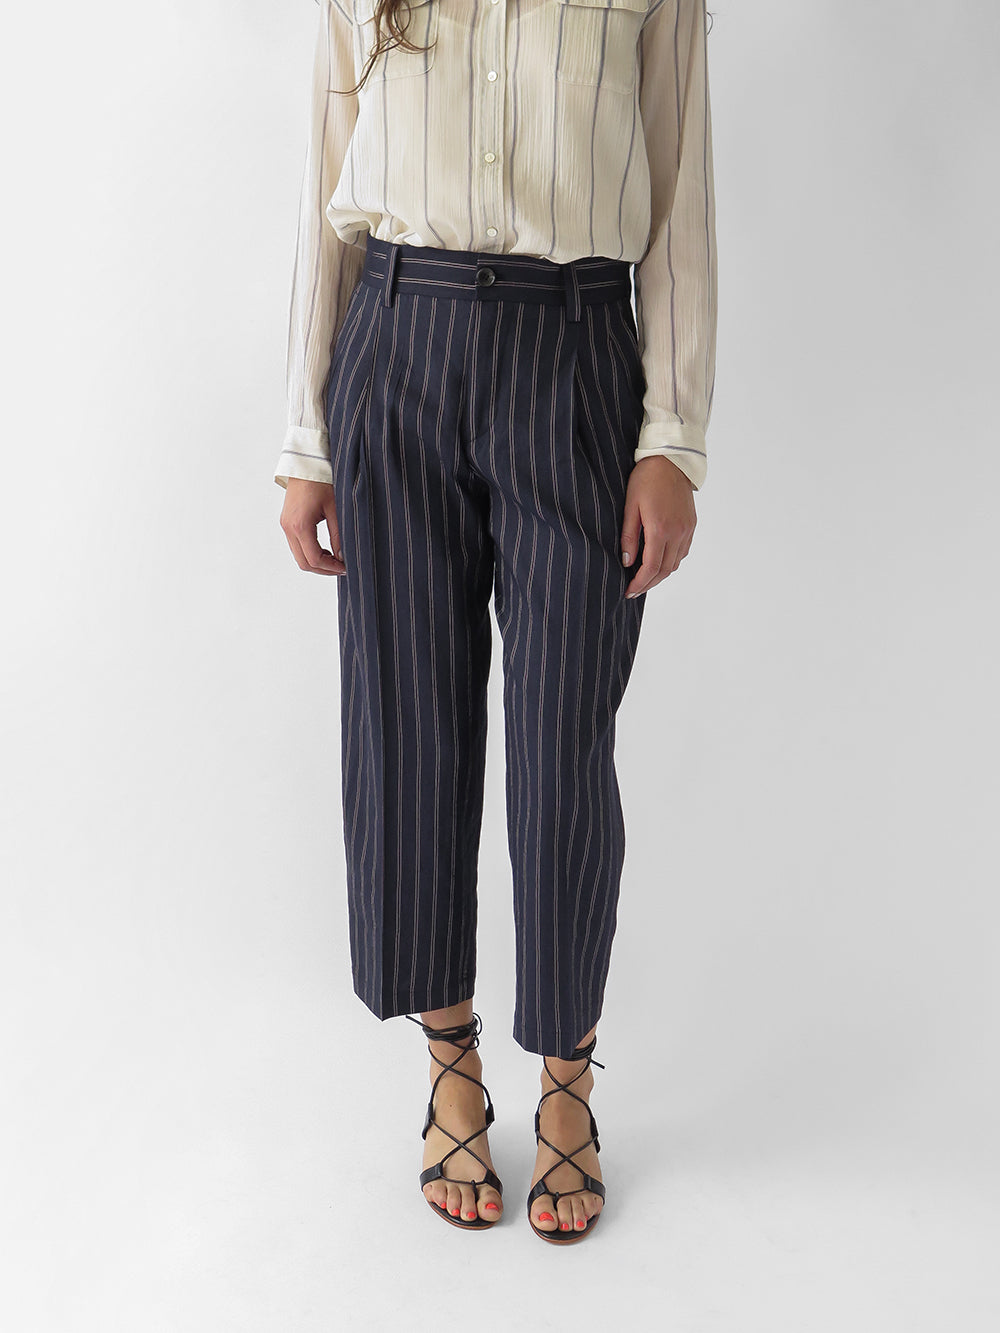 nico delhi pant in navy stripe